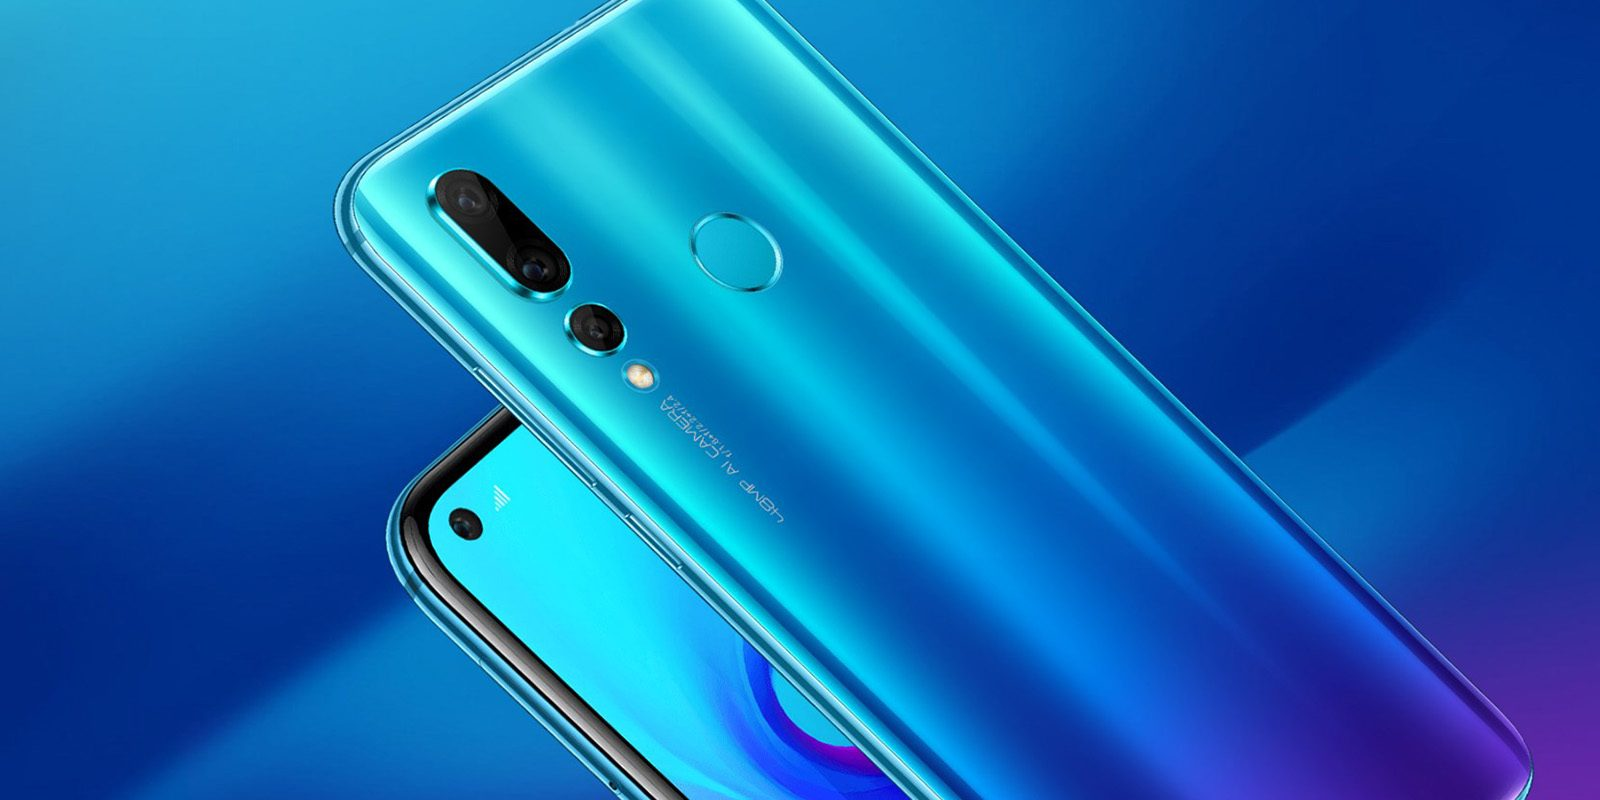 Huawei Nova 4: Price, Full Specifications And Features You Need To Know